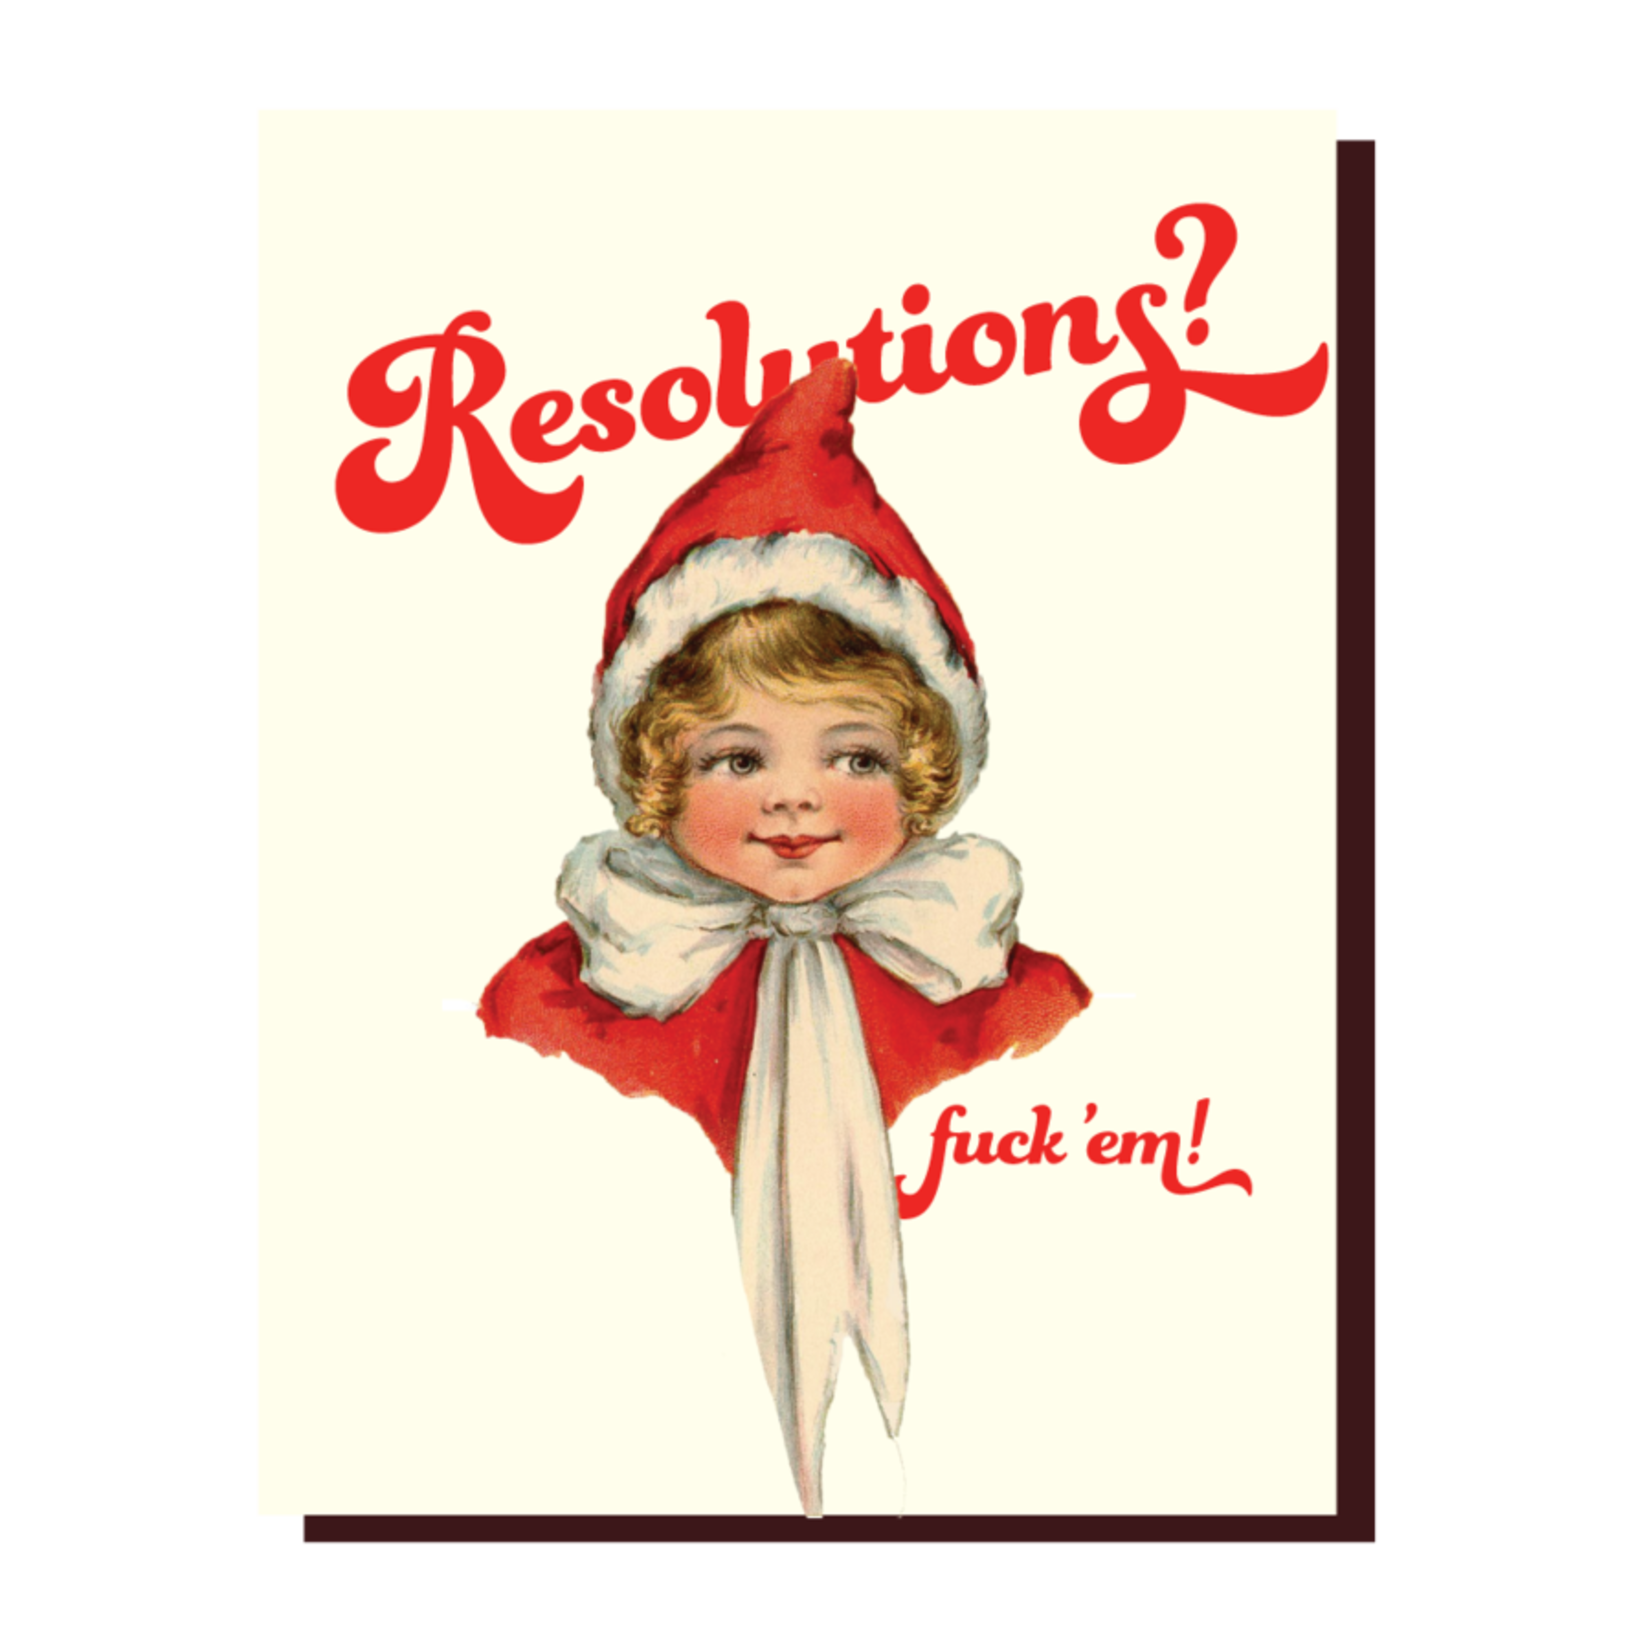 Holiday Card: Resolutions?